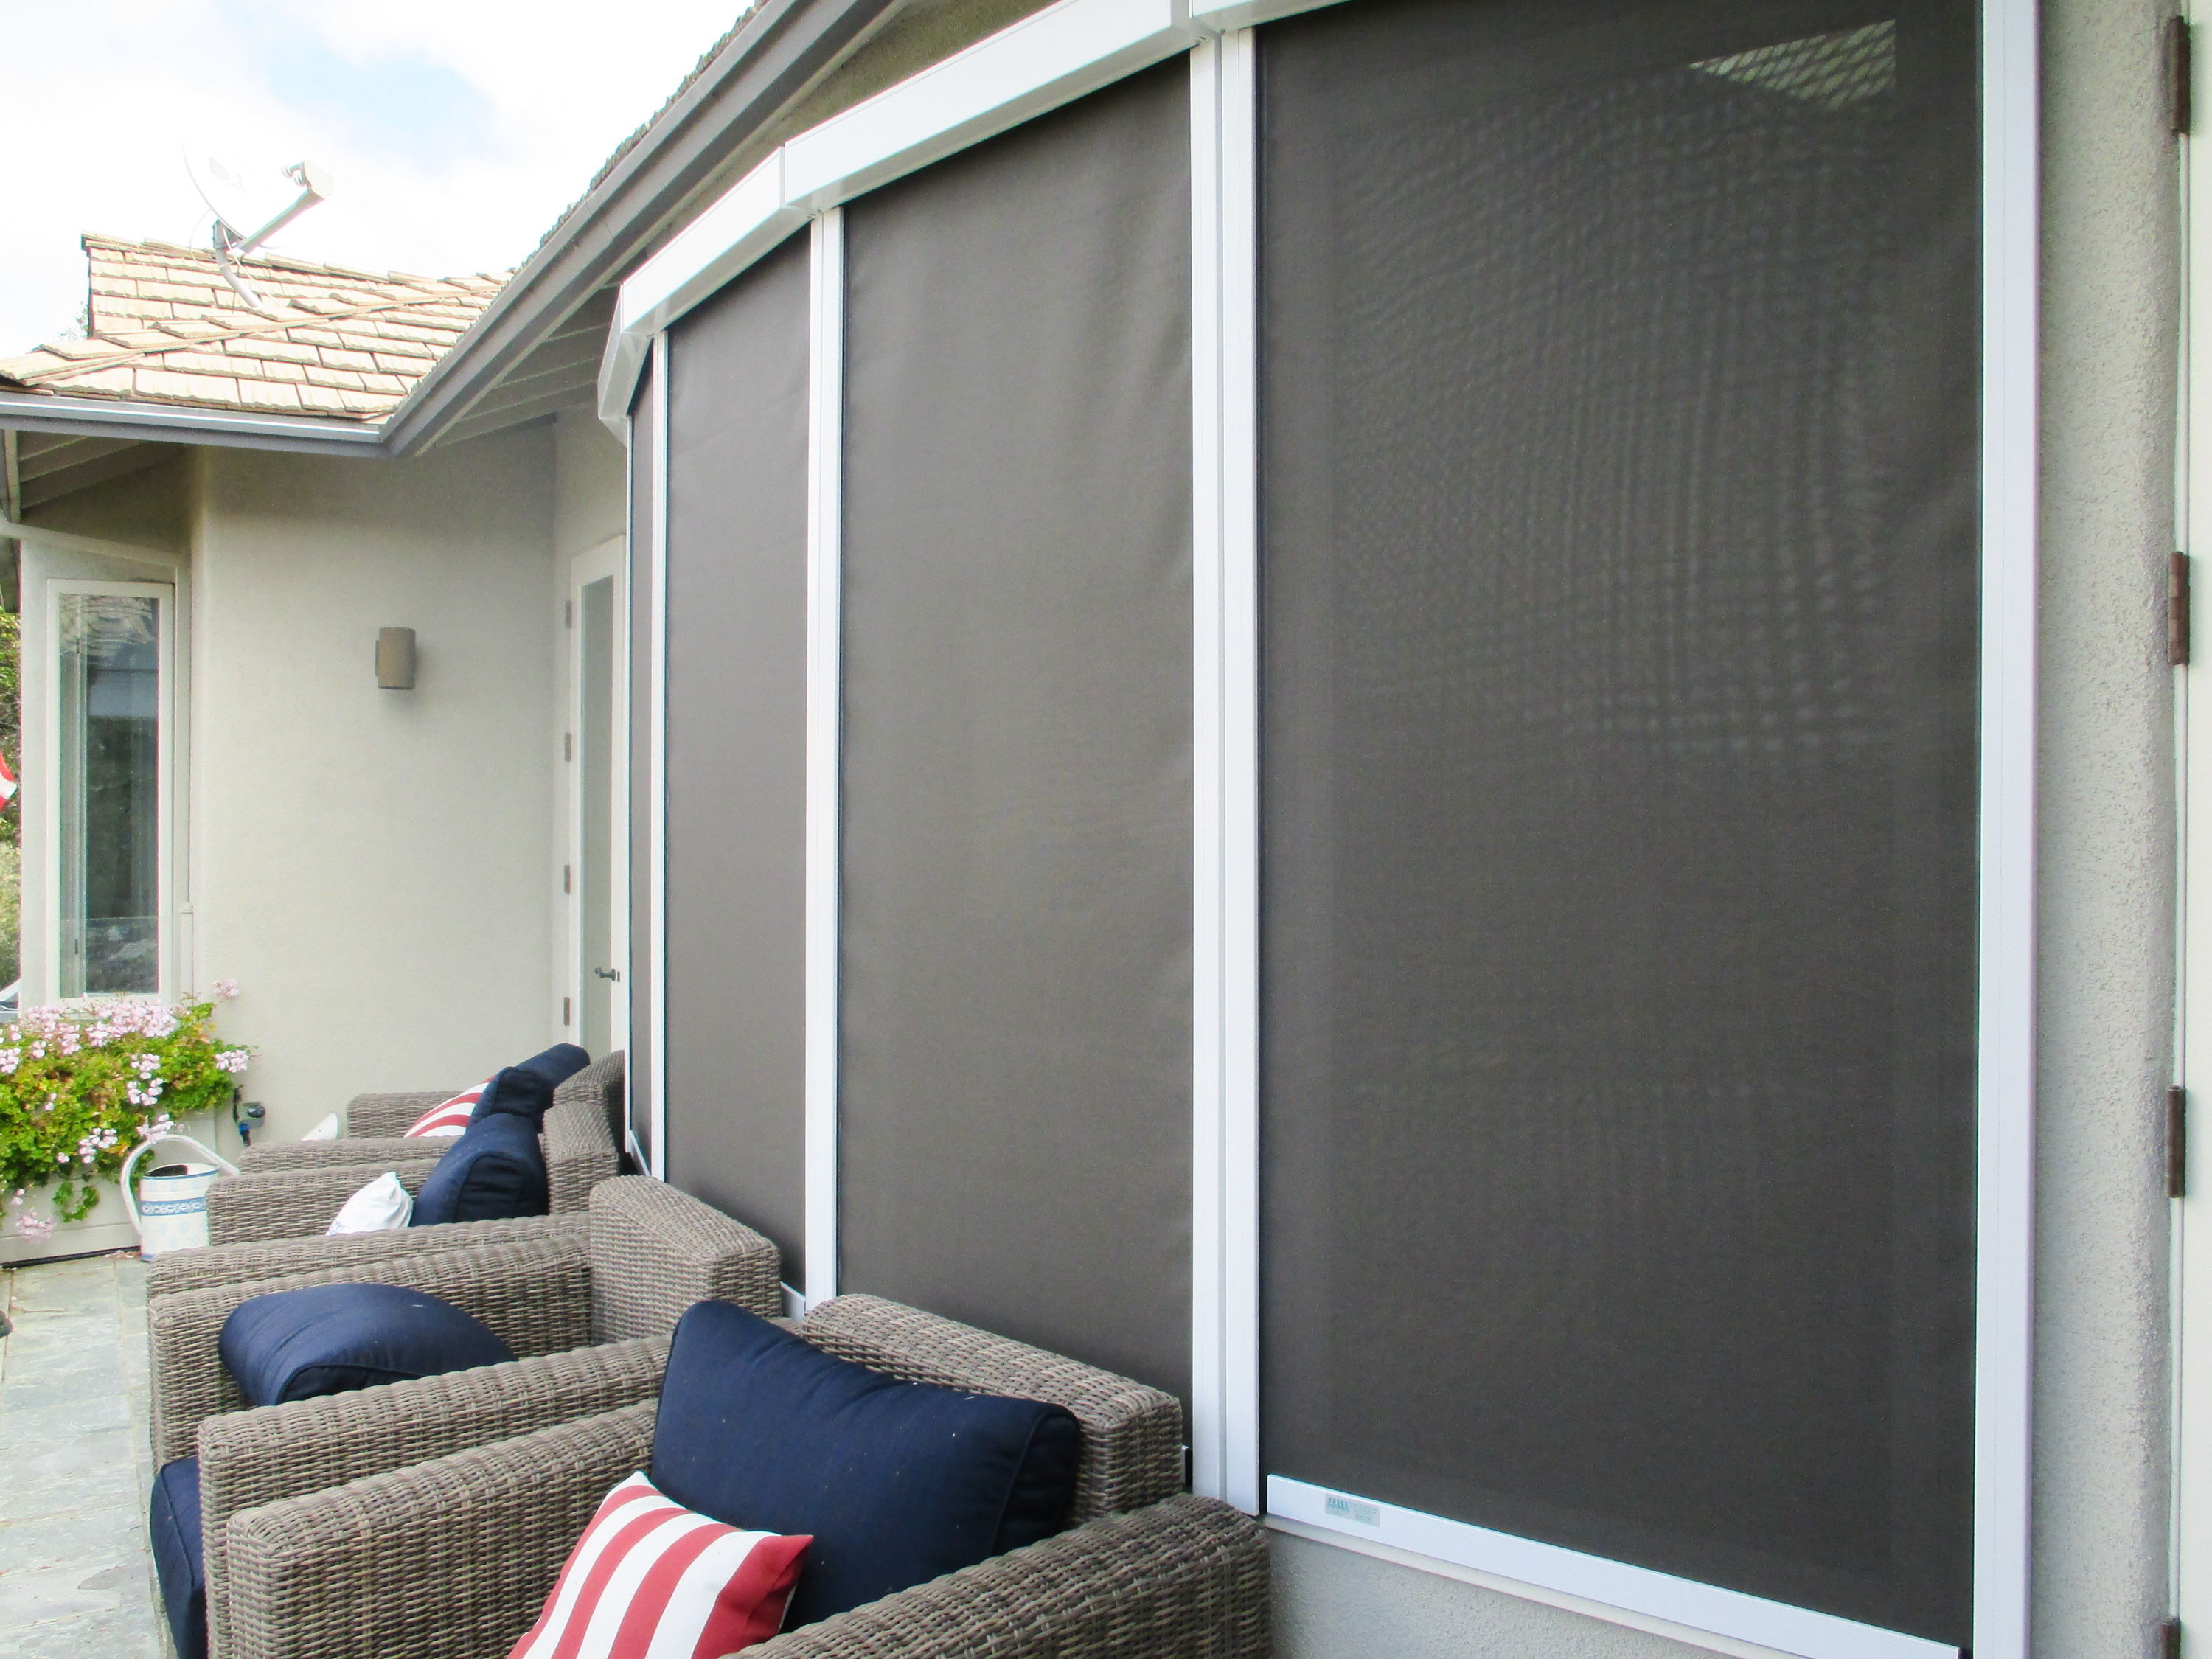 blinds for energoresurs up doors outdoor dry lowes rods patio curtain roll poles bamboo designs